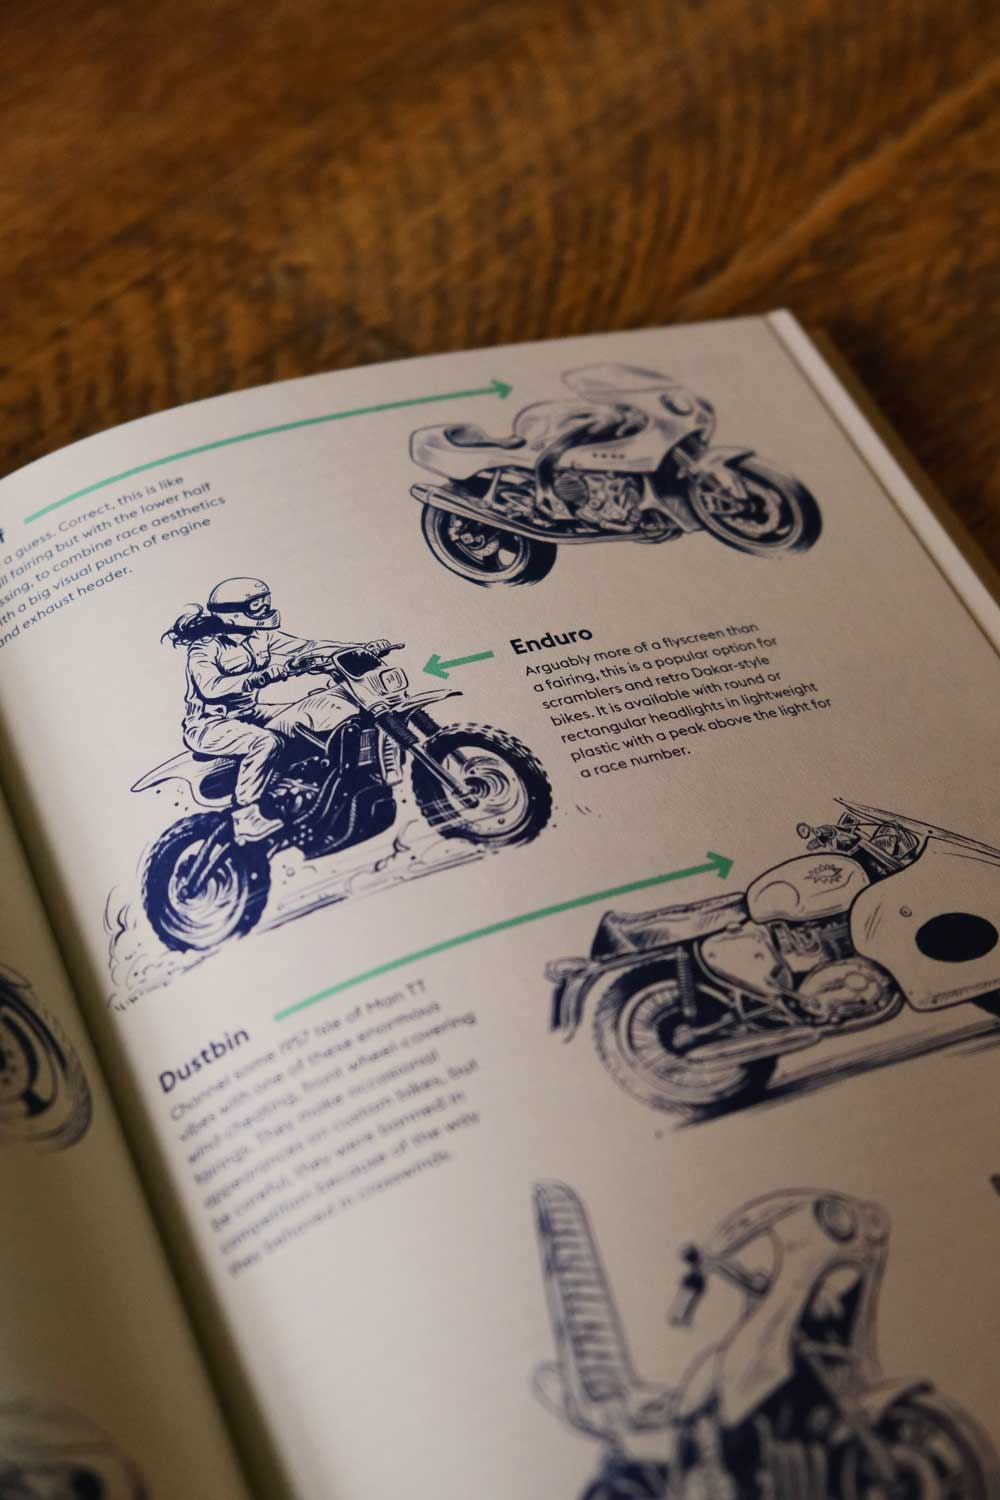 How To Build a Motorcycle illustrated book